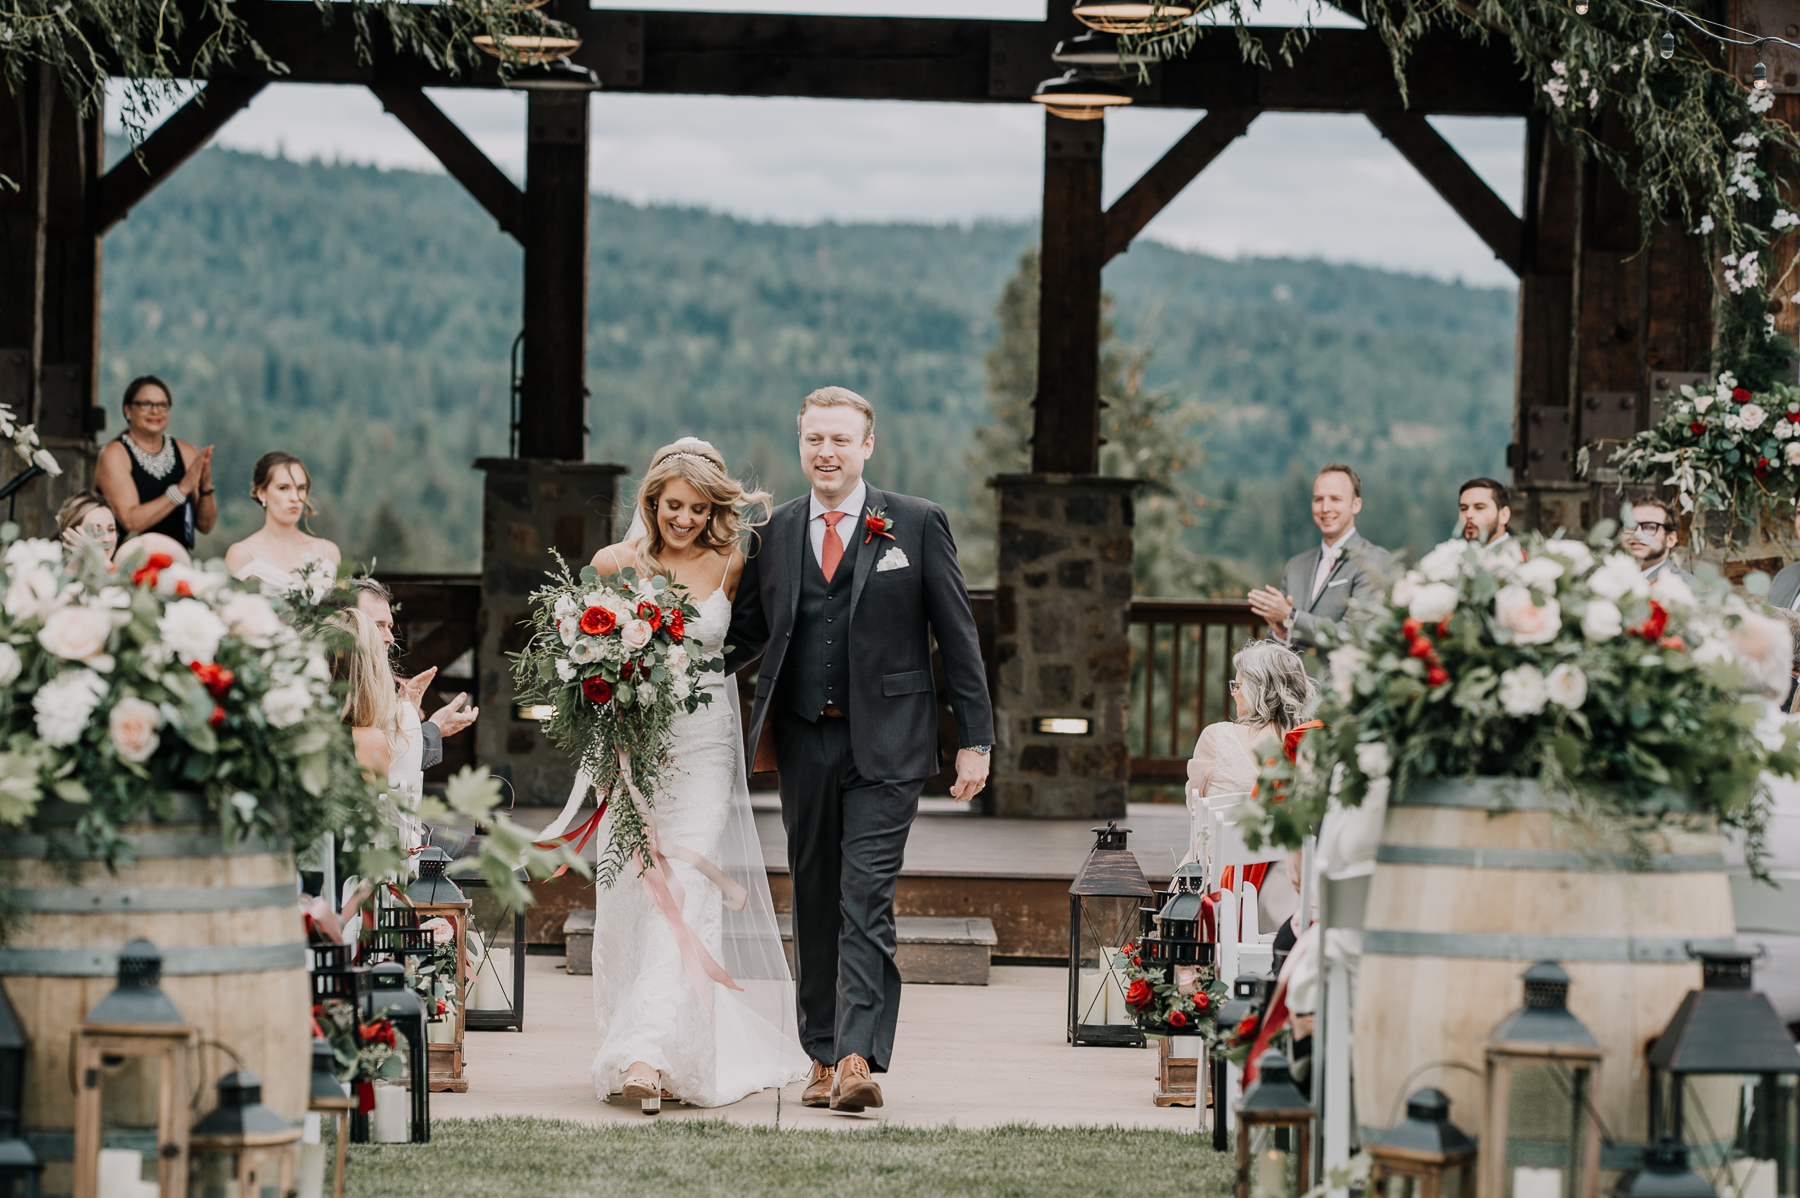 0864Swiftwater Cellars Wedding_Cle Elum Wedding_Montana Wedding Photographer_Kat & Kyle_September 15, 2018-1199.jpg